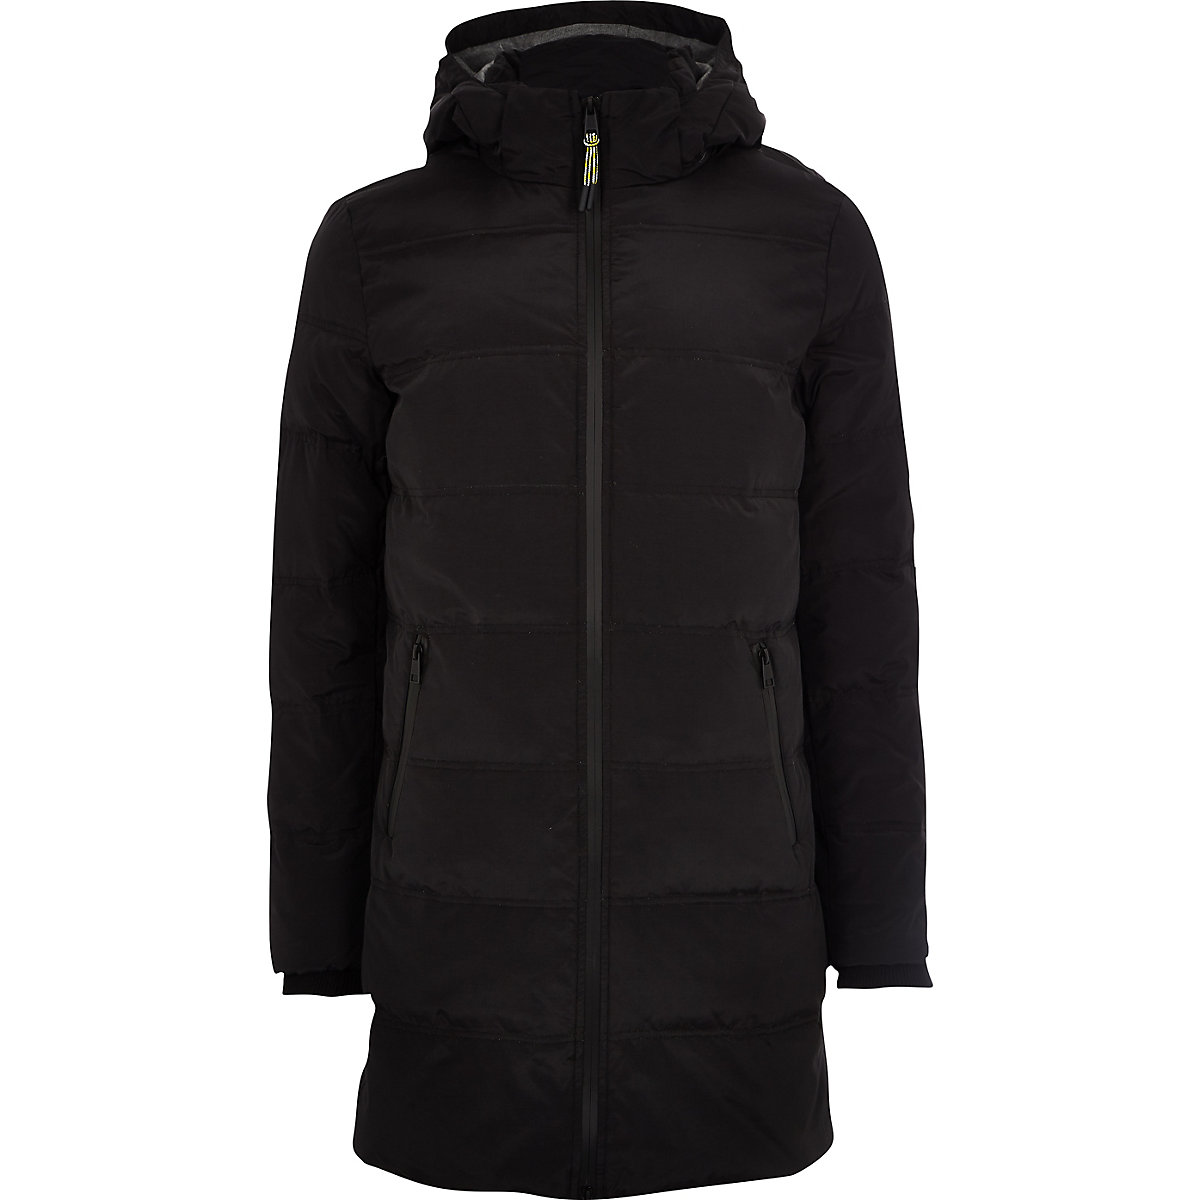 Only & Sons black longline puffer jacket